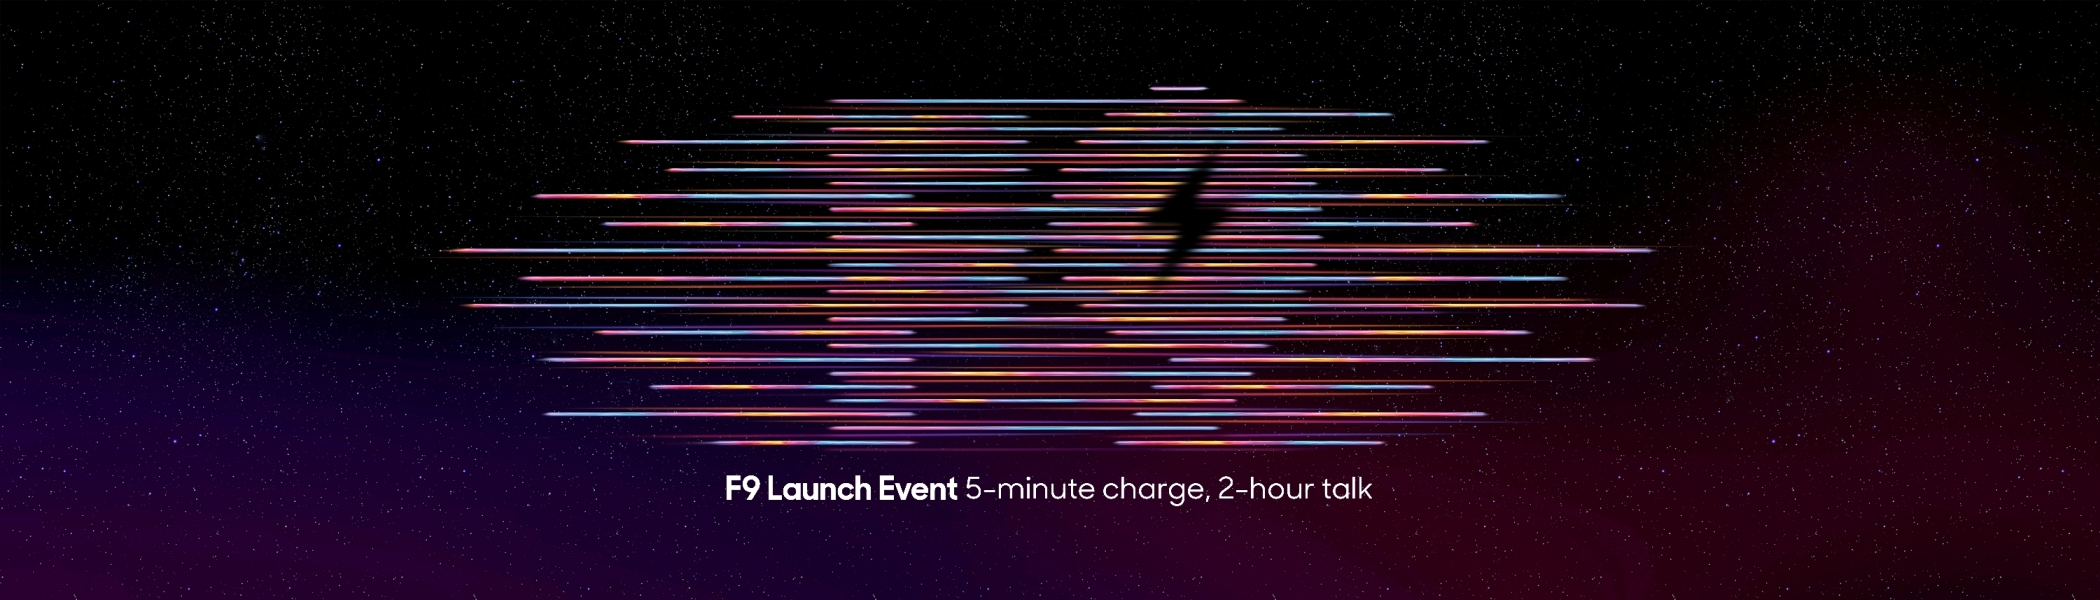 oppo-to-launch-f9-in-the-philippines